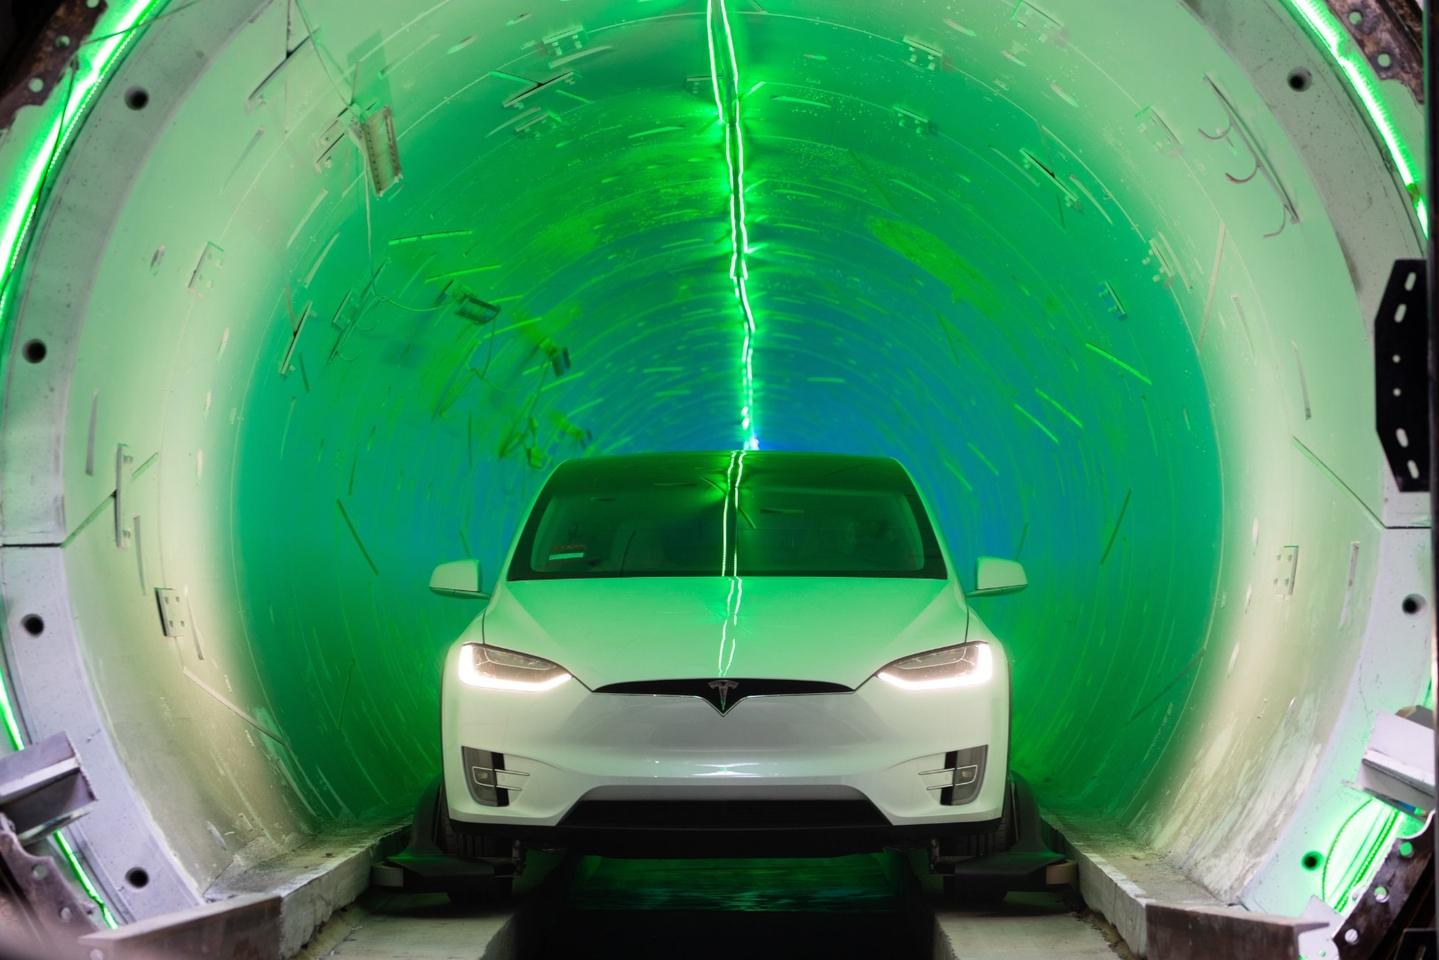 A Tesla emerges from The Boring Company's test tunnel